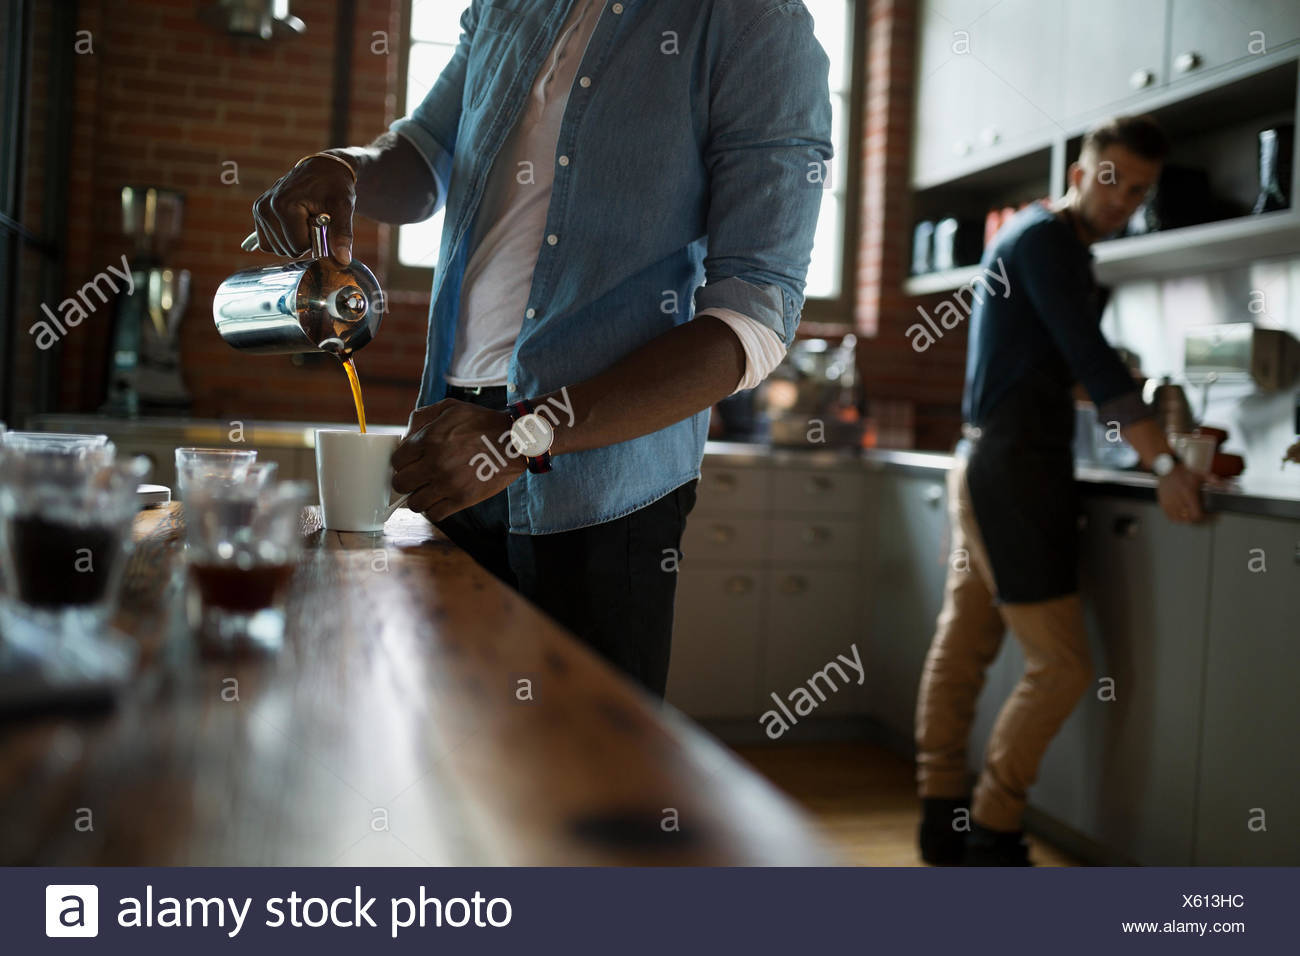 Entrepreneurial coffee roasters pouring coffee in kitchen - Stock Image